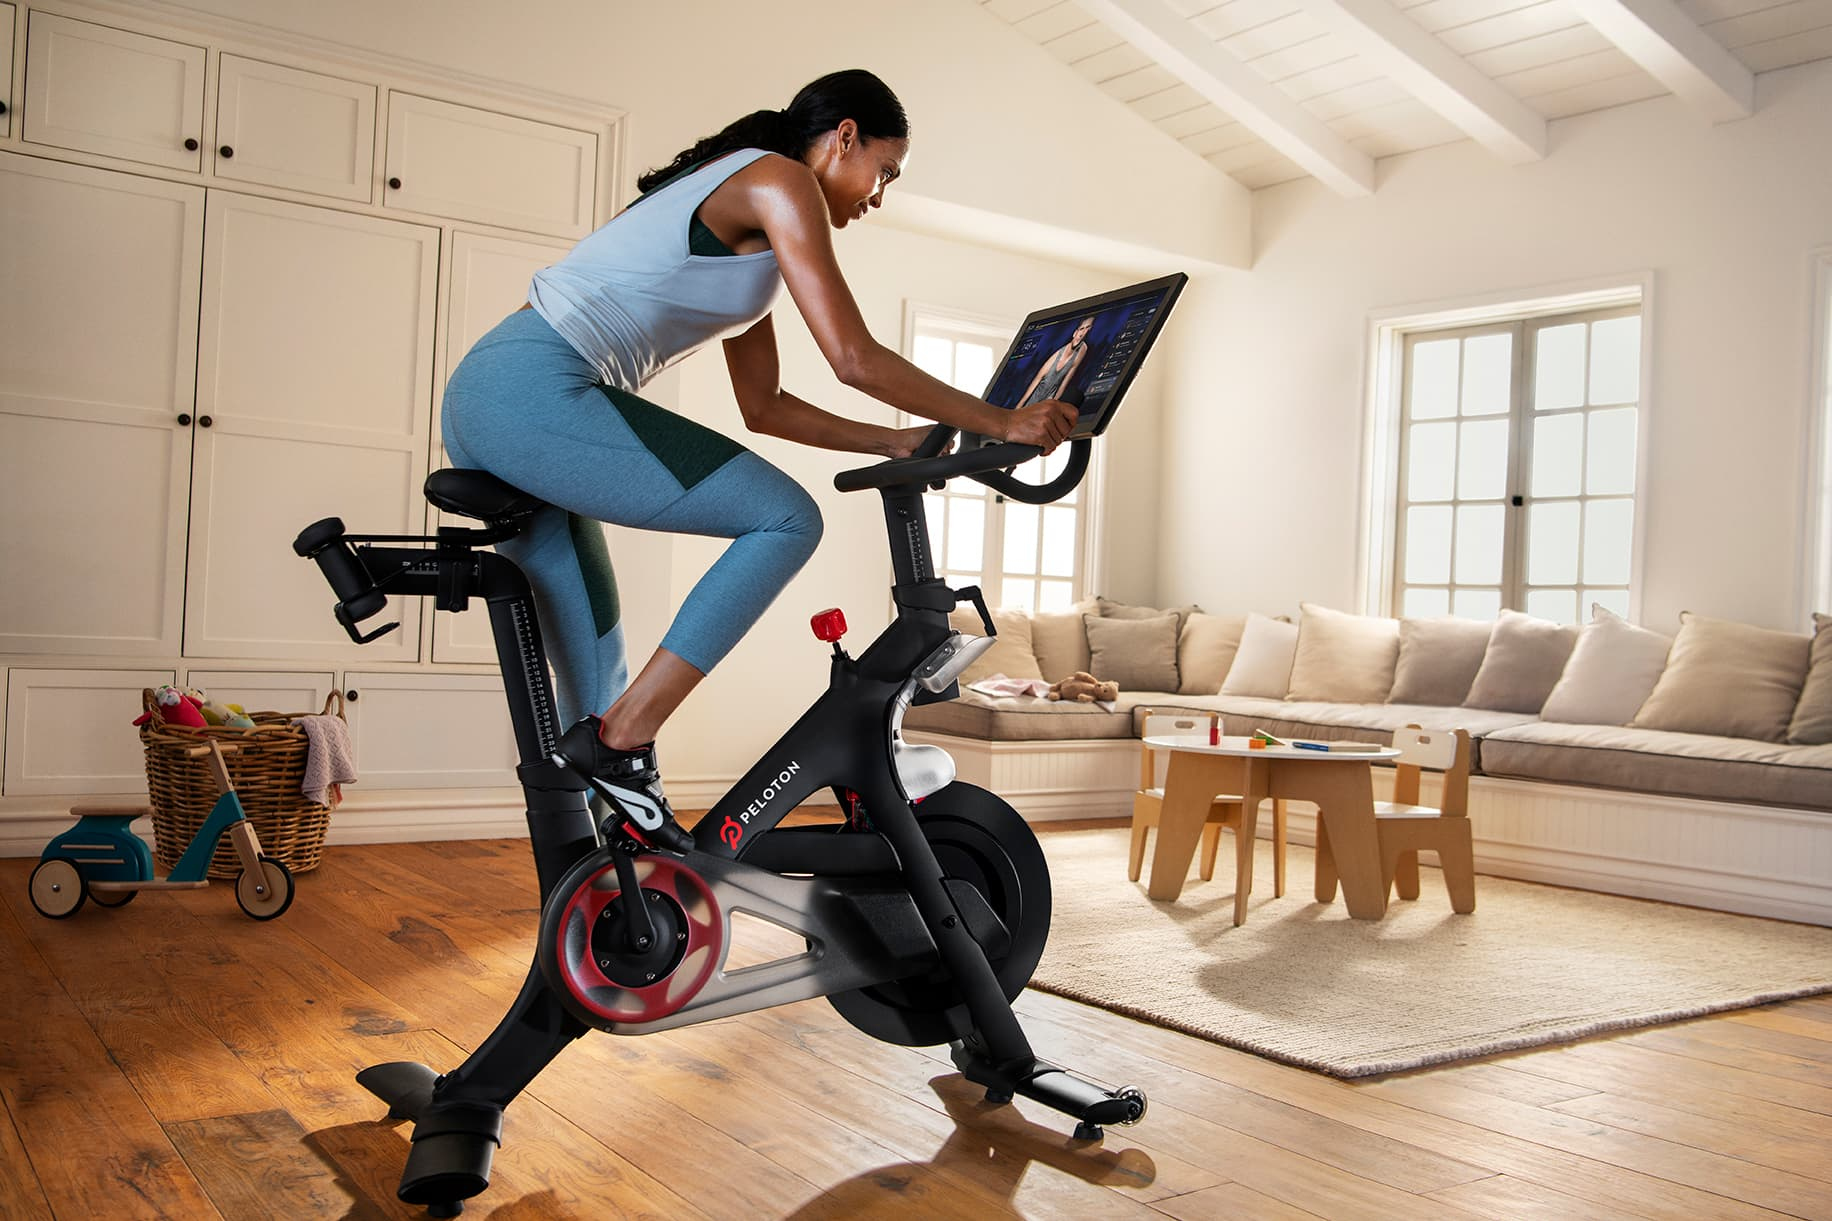 Major analysts are bullish with their first reports on the struggling Peloton IPO